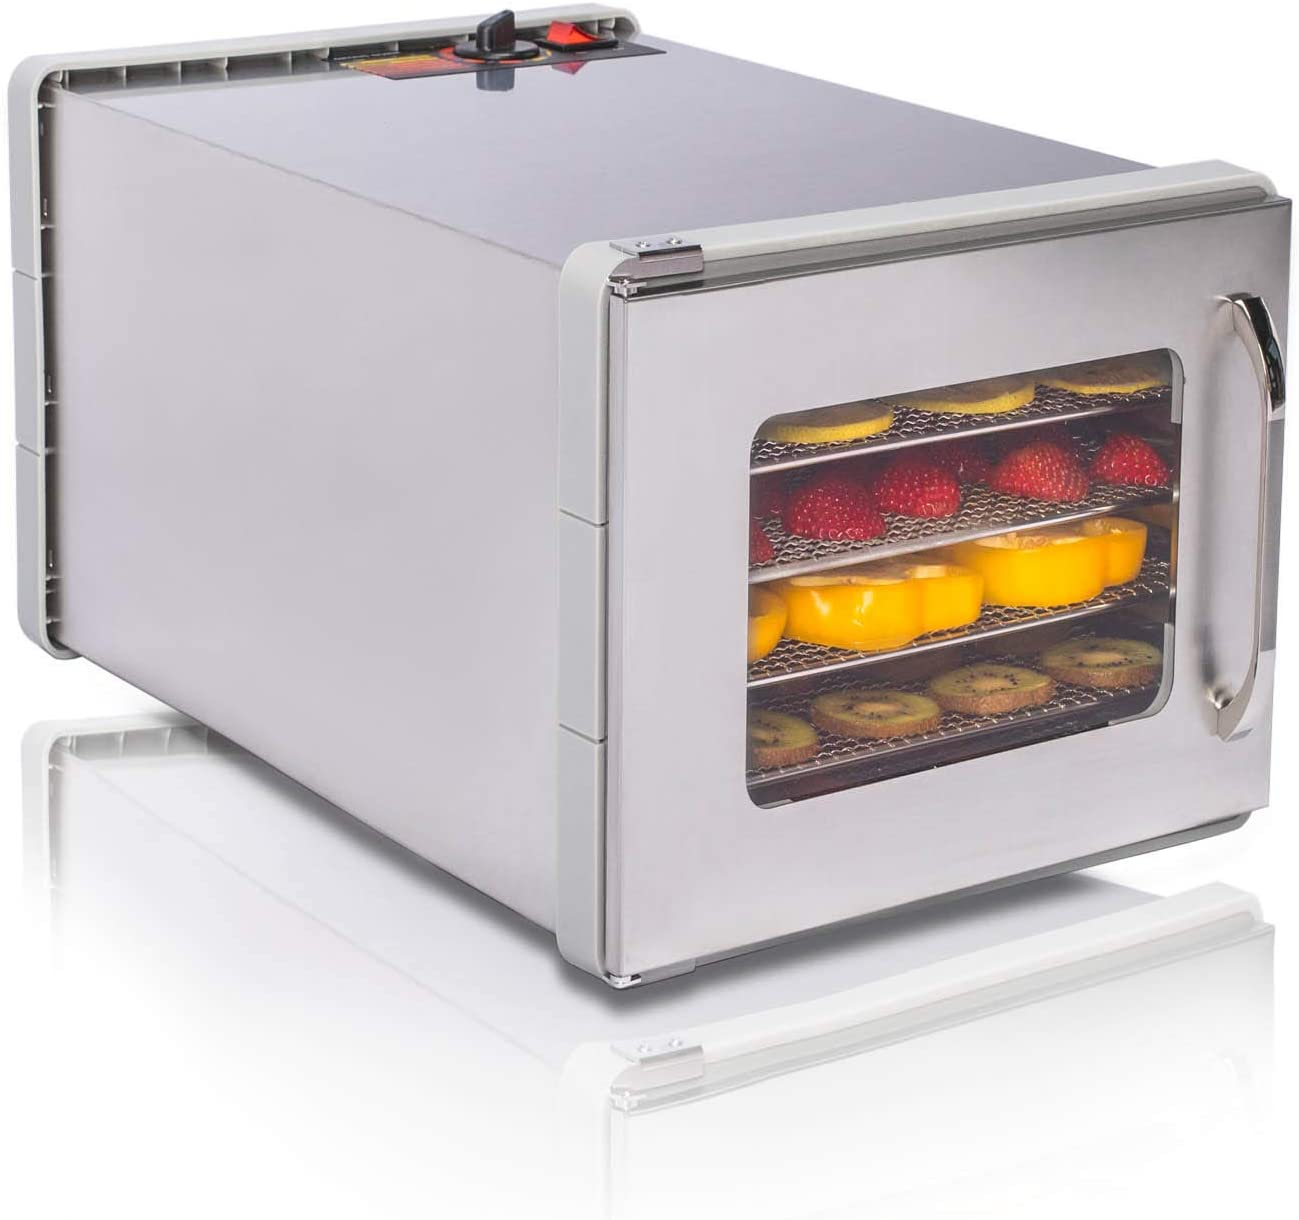 JAYETEC Food Dehydrators,Commercial Stainless Steel Dehydrator Raw , 6-Trays staniless steel trays with Adjustable Thermostat 95-155°F, fruit, vegetables, meat, flowers, herbs, beef dryer,transparent front door ,including 2 pcs non-stick sheets